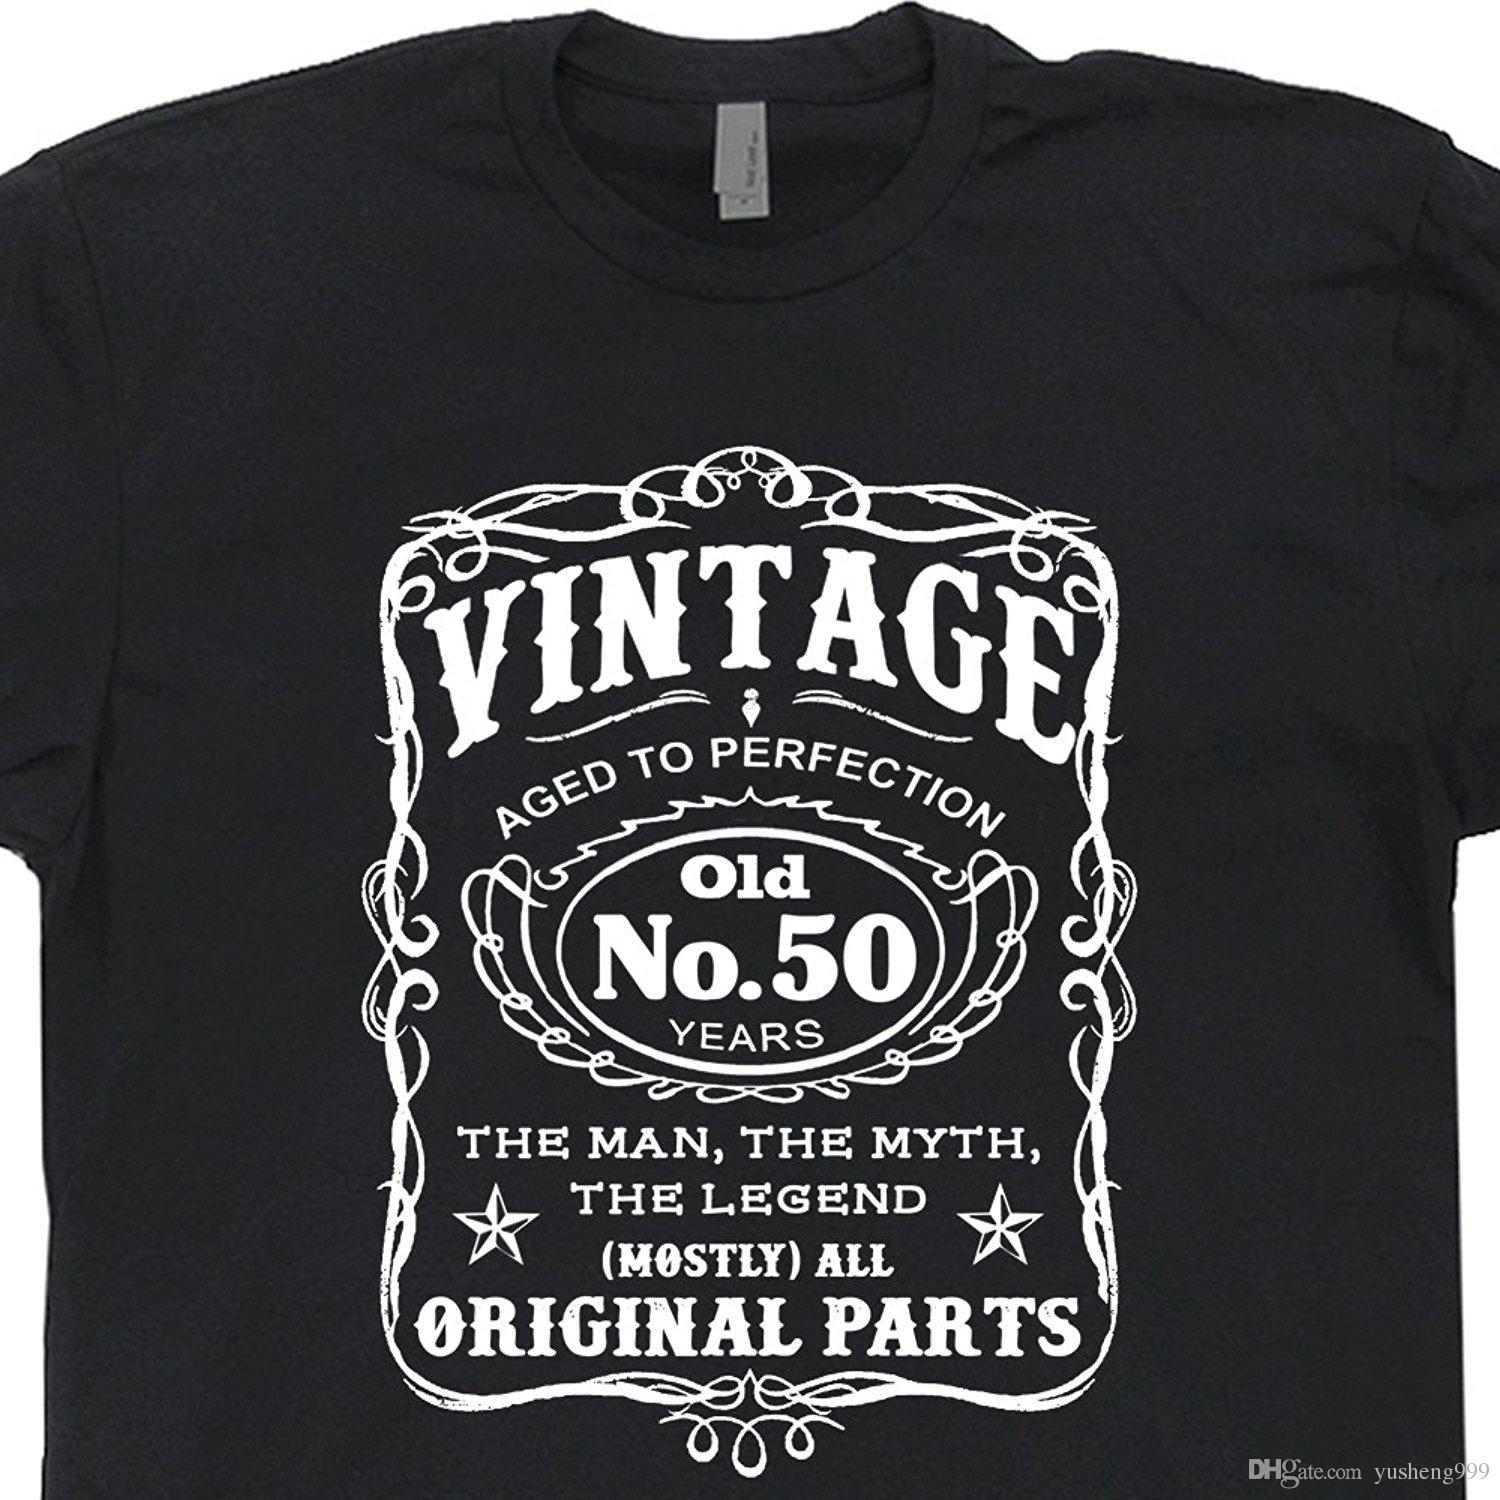 50th Birthday T Shirt 1966 Novelty Tee Shirts Gag Gift Vintage Present Dad Husband Old Fart Awesome Tshirt Designs 10 From Yusheng999